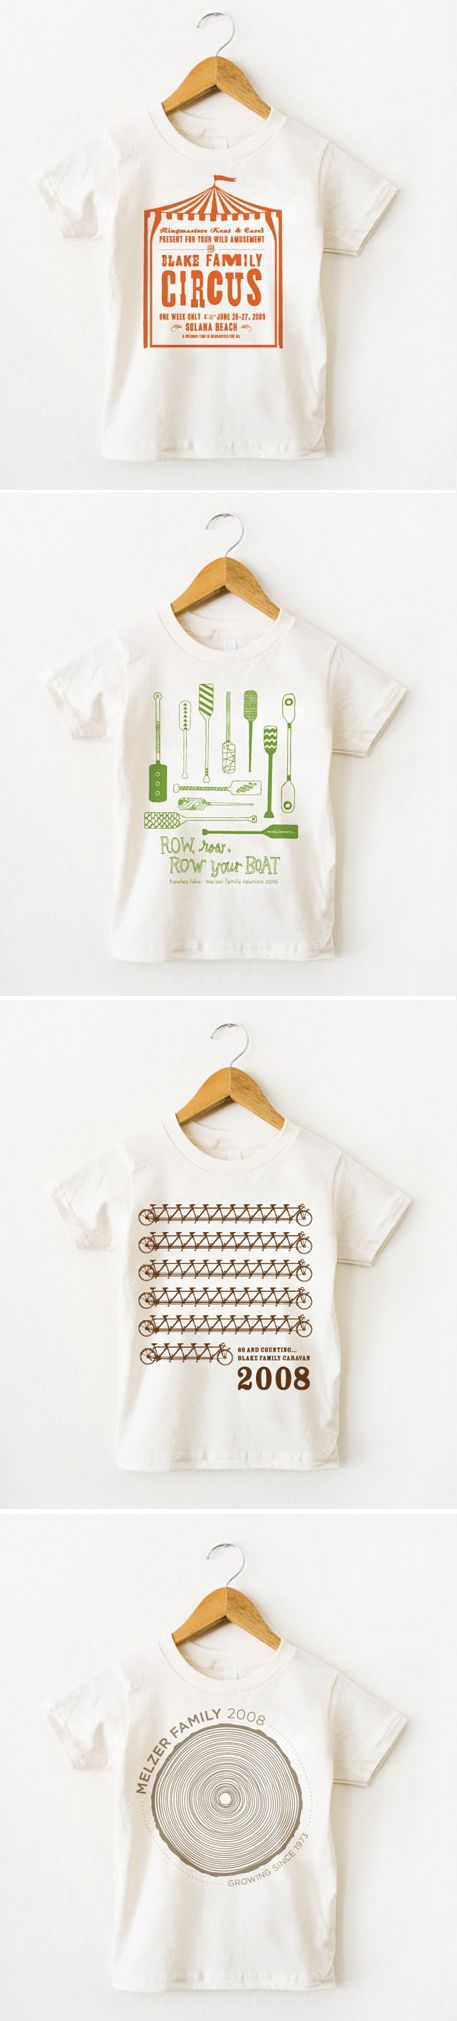 Cute family reunion t-shirt ideas... I know.  Lame.  But if ya have to be lame, why not do it in style?!